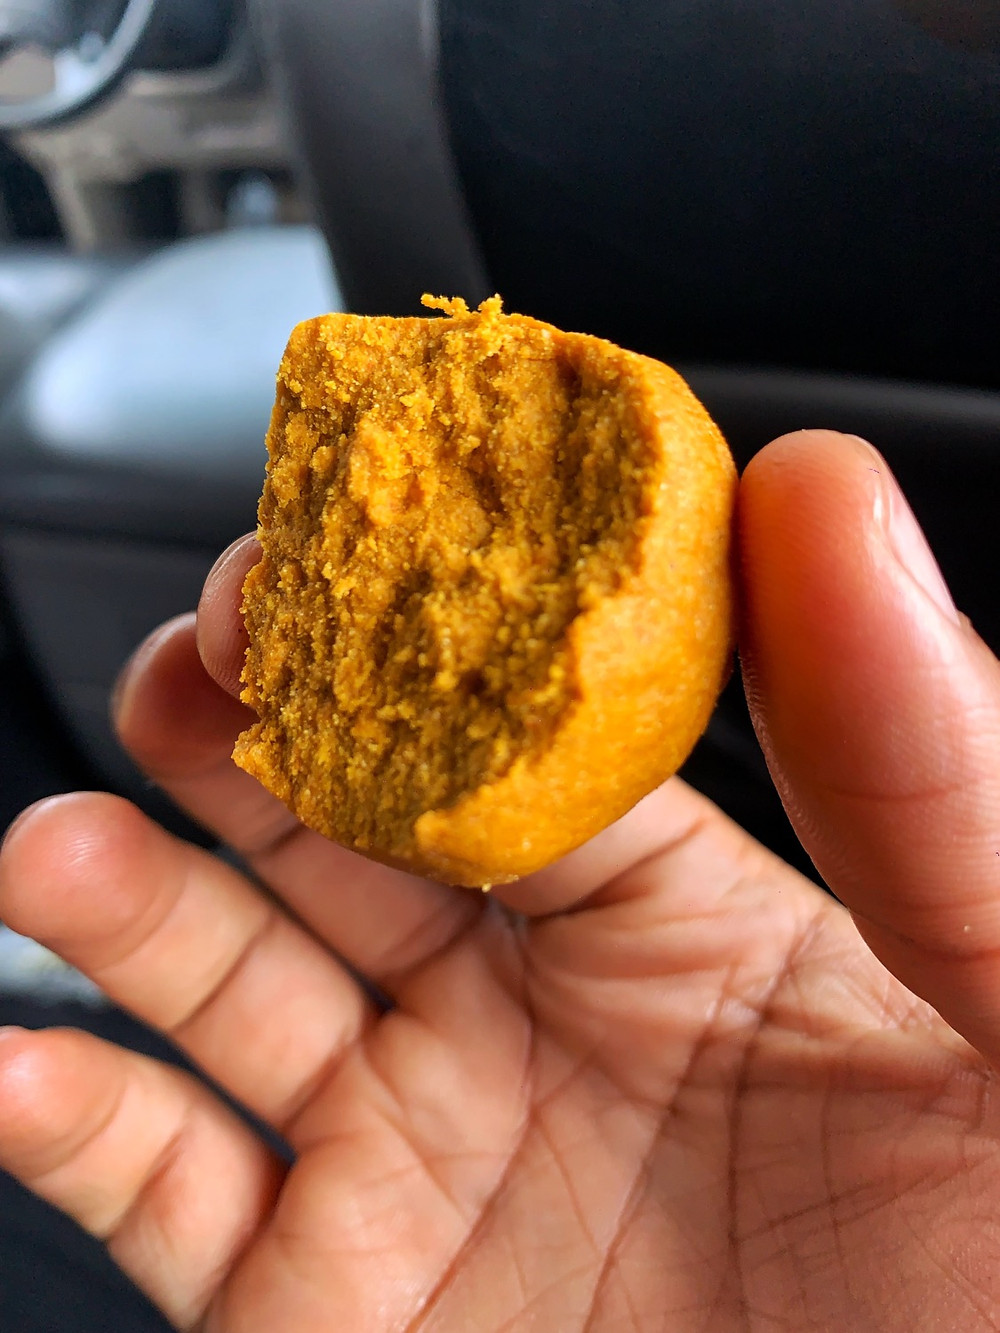 Aadun is a snack made from corn meal and palm oil